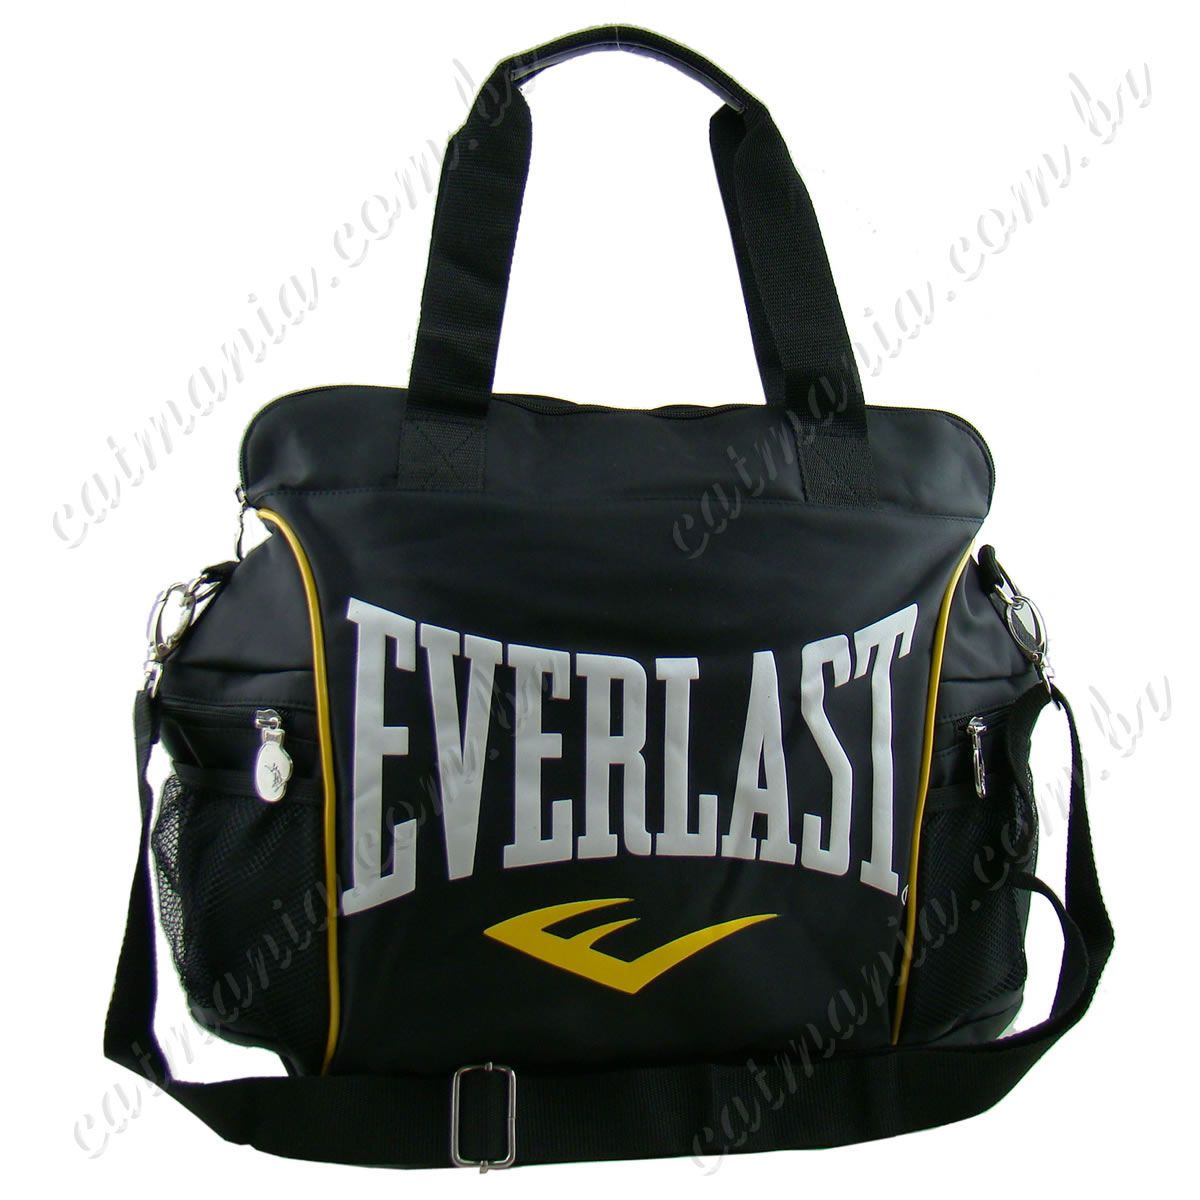 df39af875 Bolsa Everlast - Zíperes e Shopping | Moda - Cultura Mix